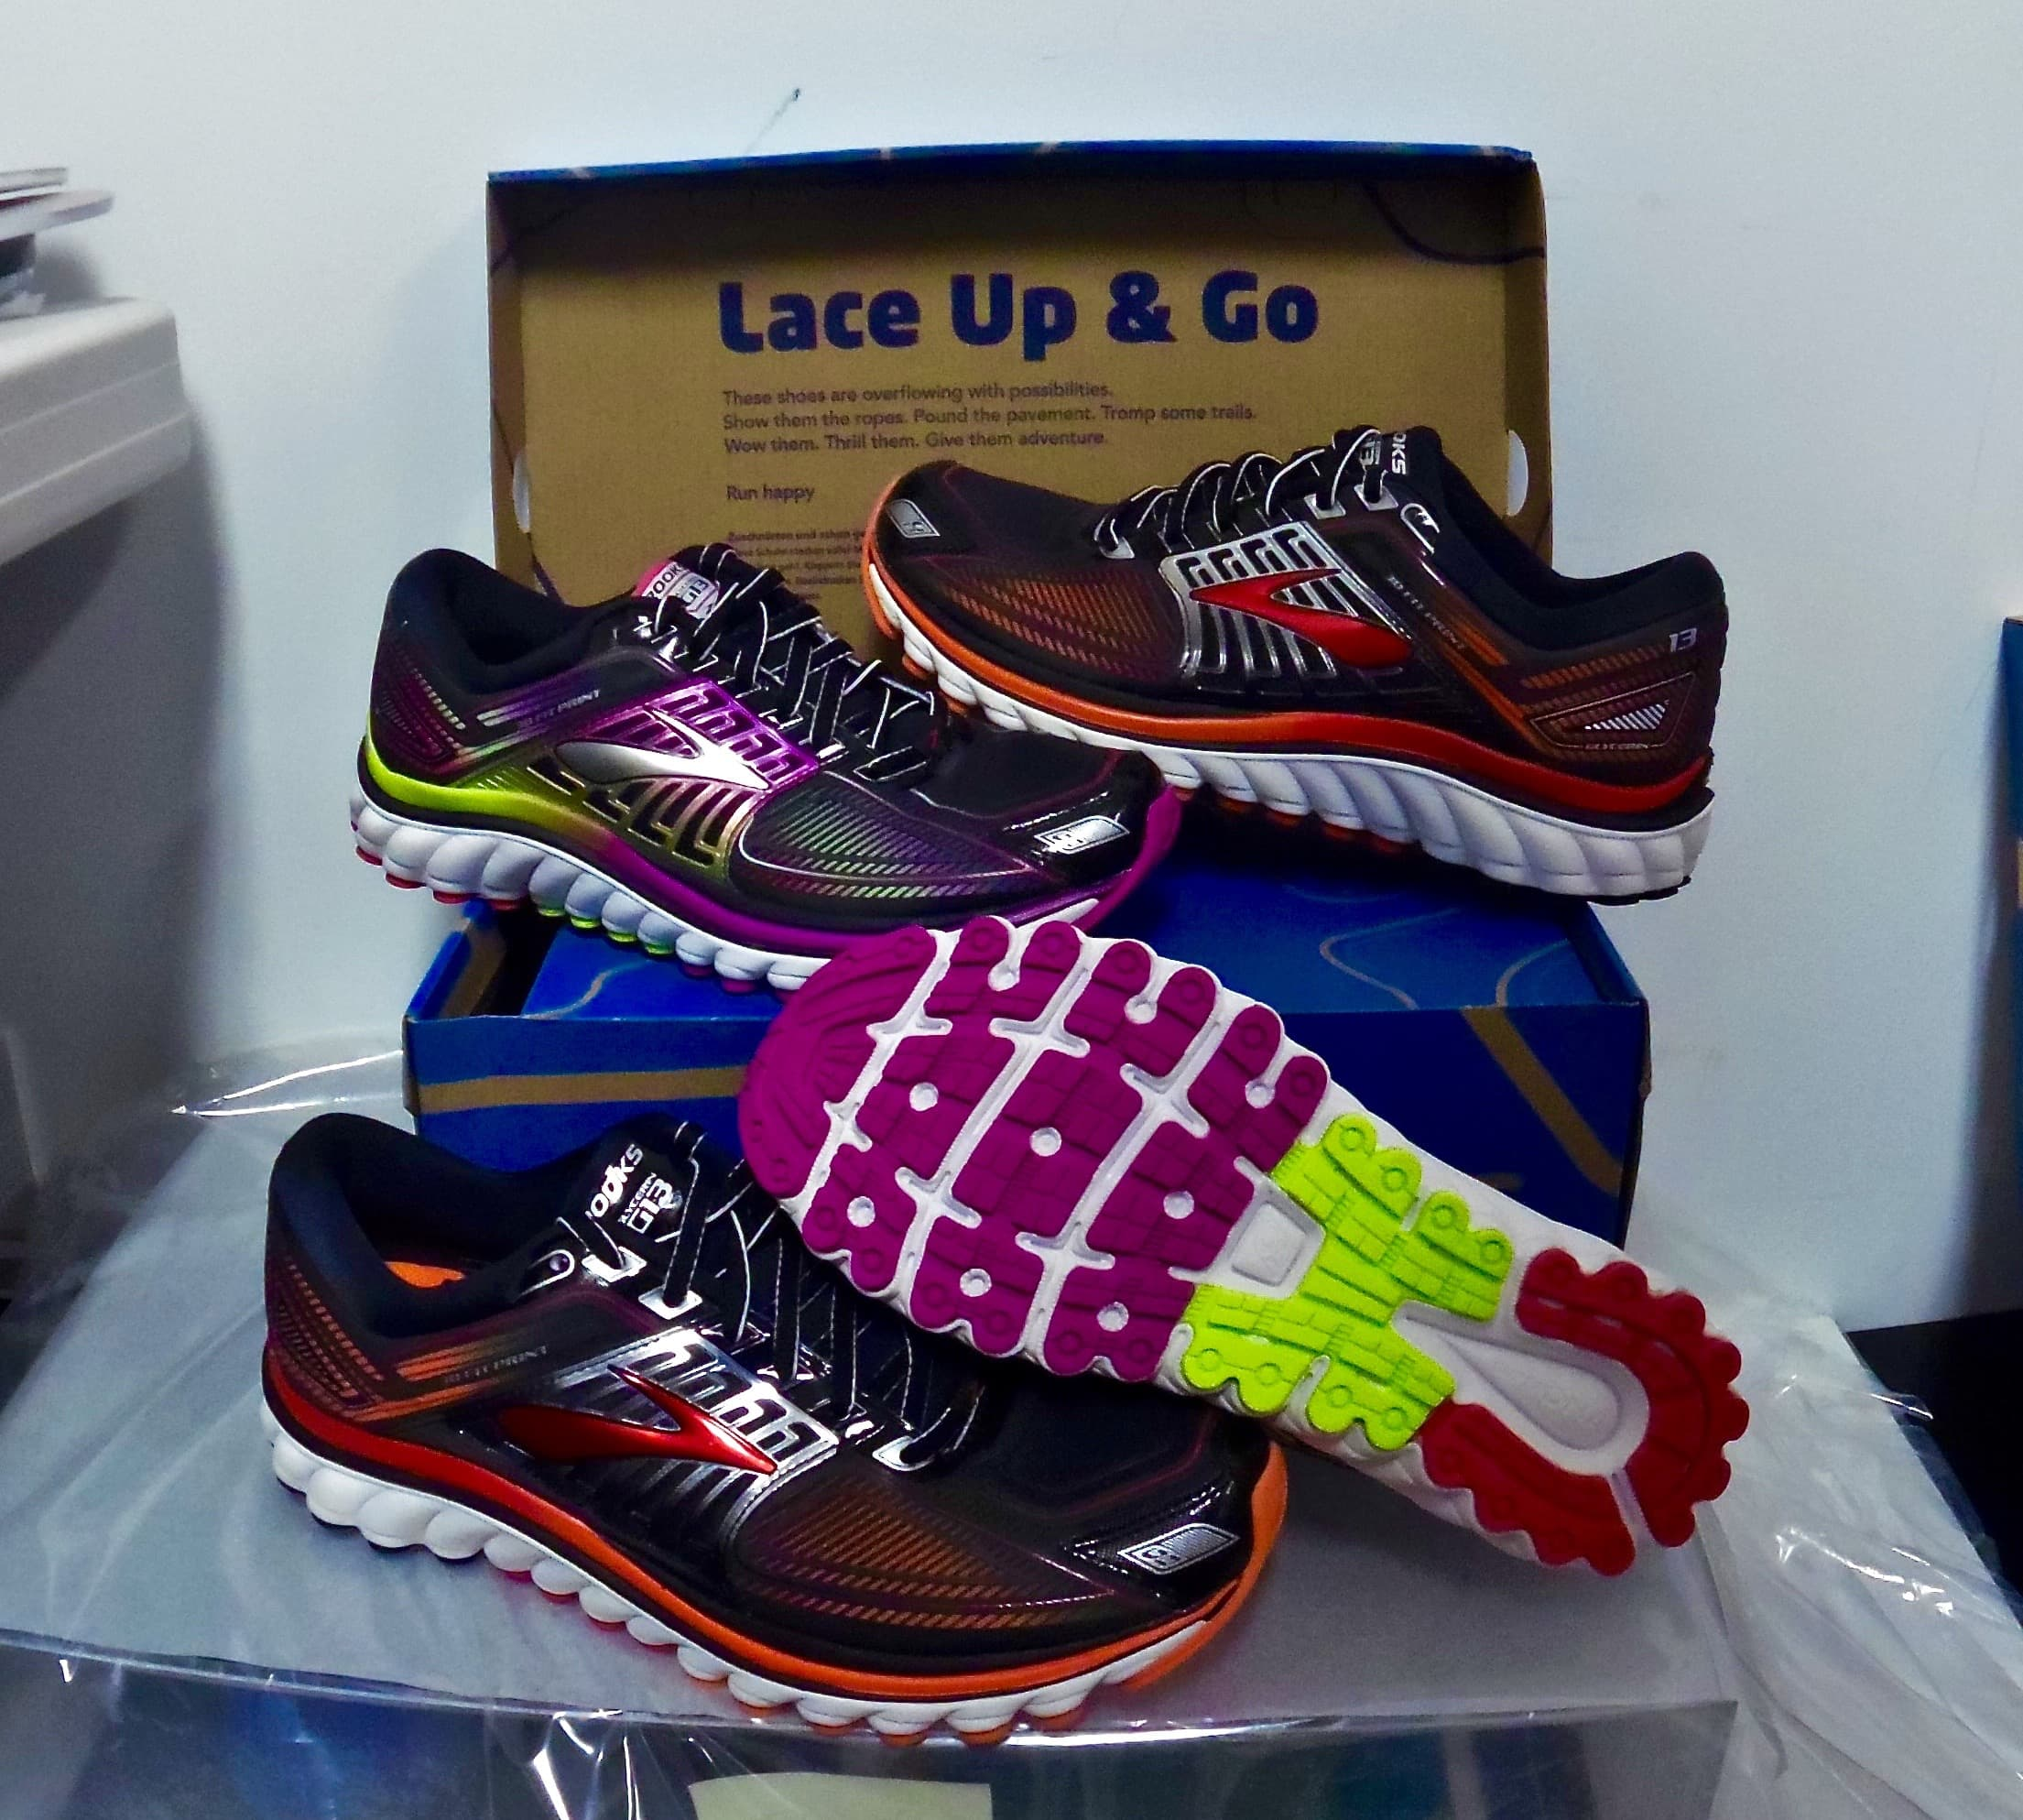 23ff798d03257 New England Running Company - Recognized as one of the Top 50 Specialty  Running Stores in the U.S.